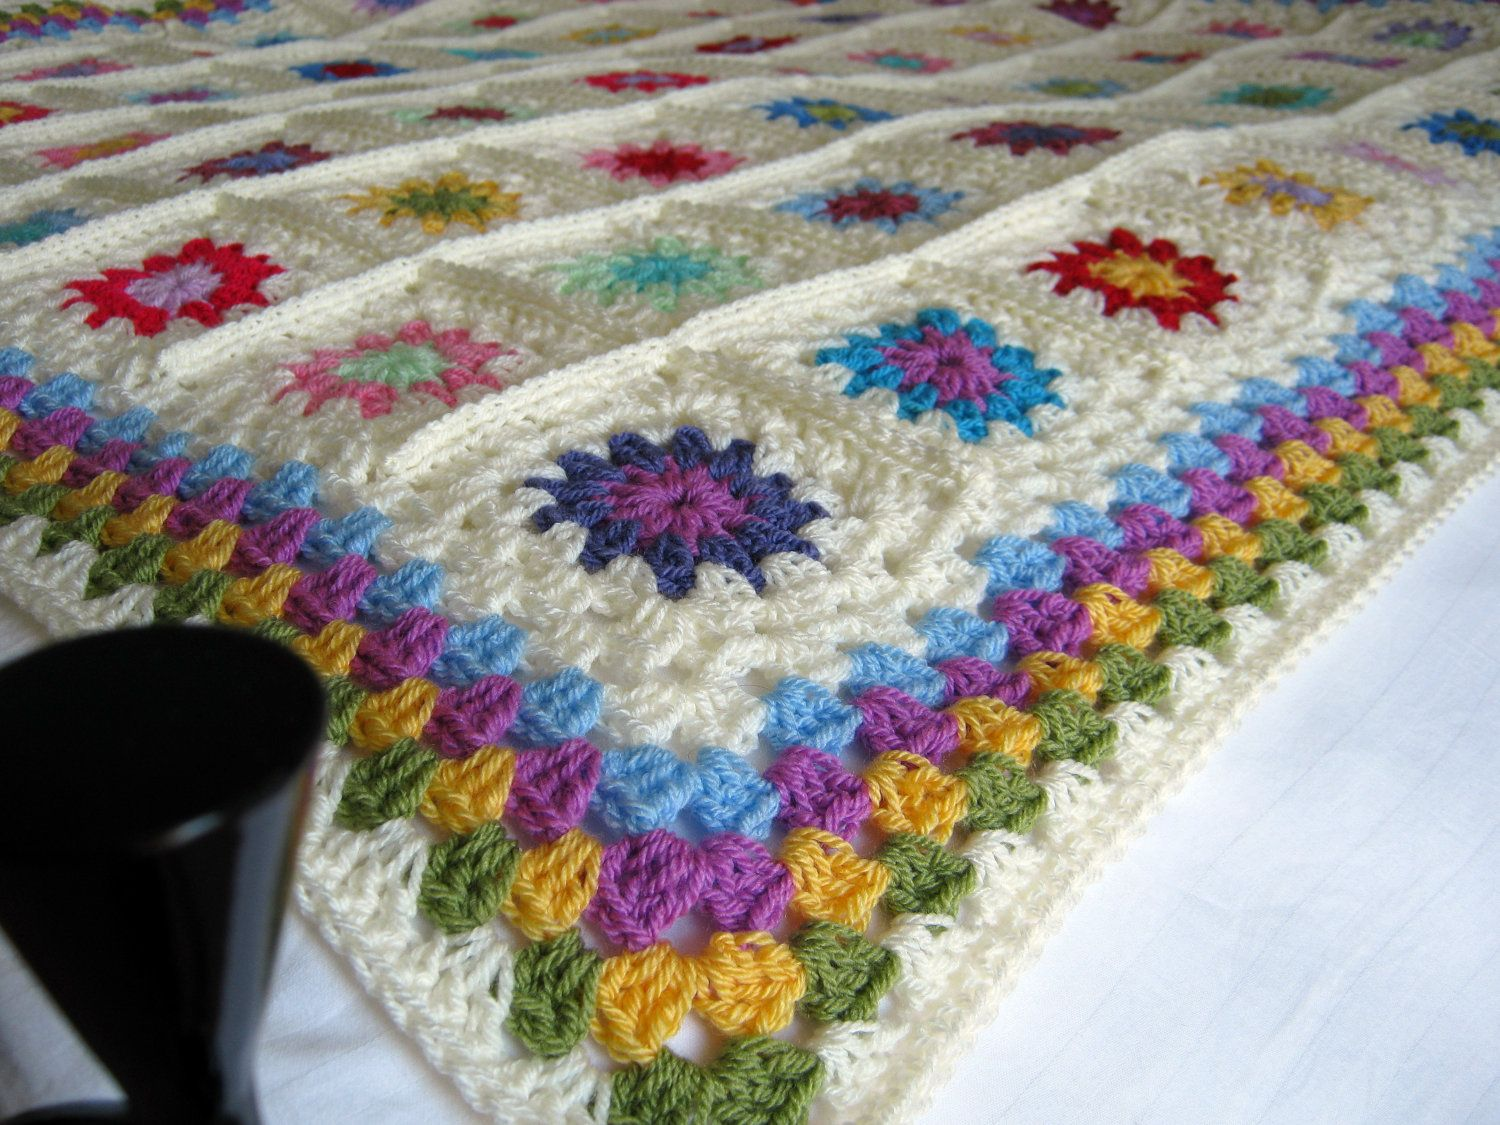 Find granny square patterns from a vast selection of afghans find granny square patterns from a vast selection of afghans description from pstoattern bankloansurffo Image collections